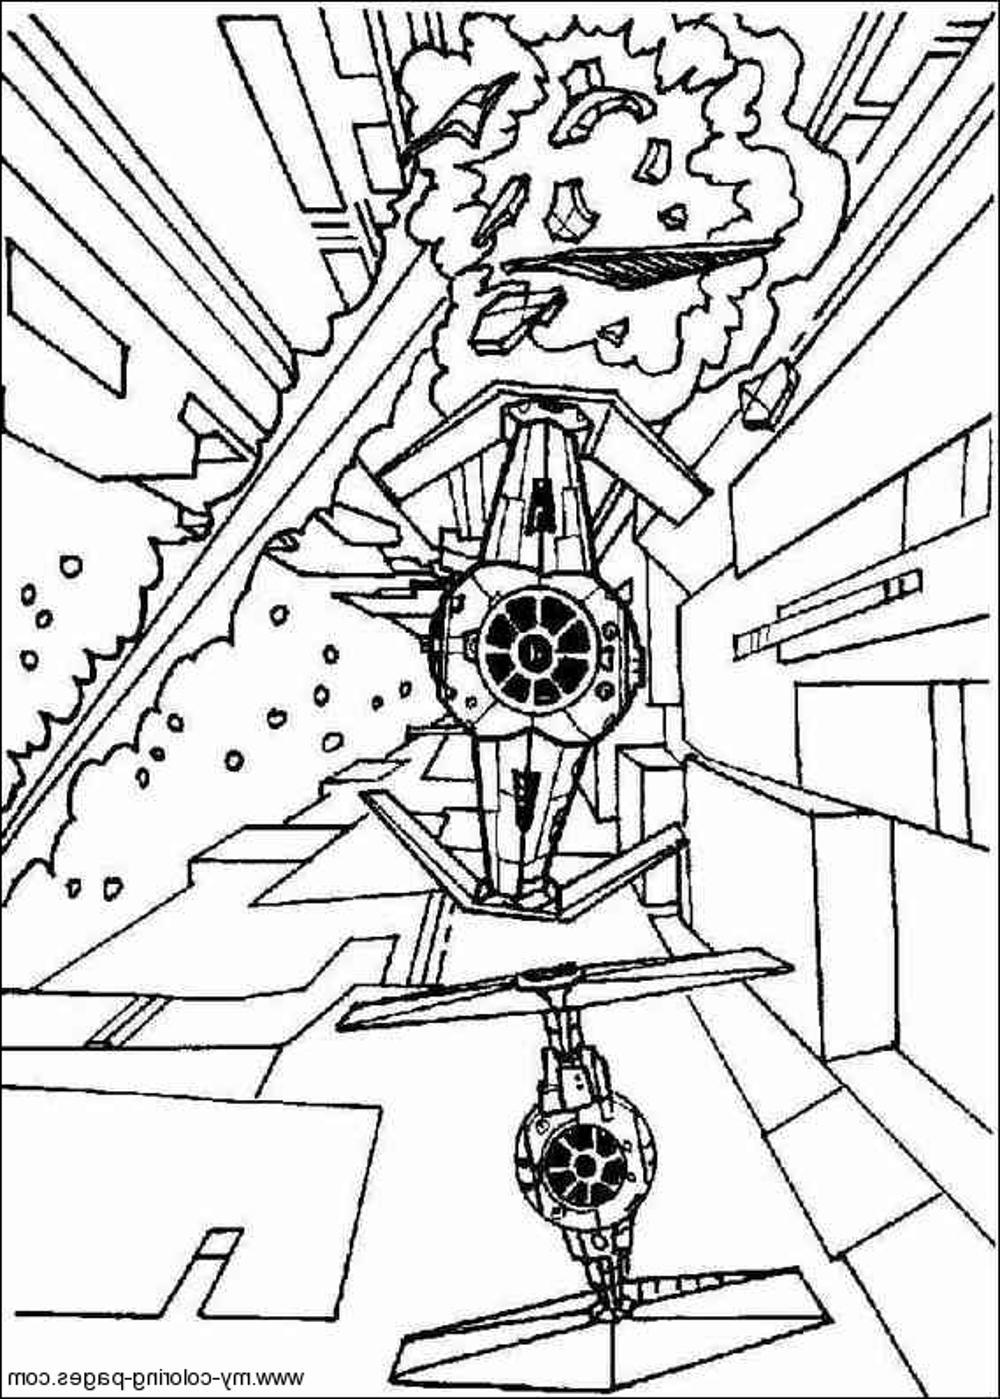 free lego star wars printables lego star wars coloring pages to download and print for free printables lego star free wars